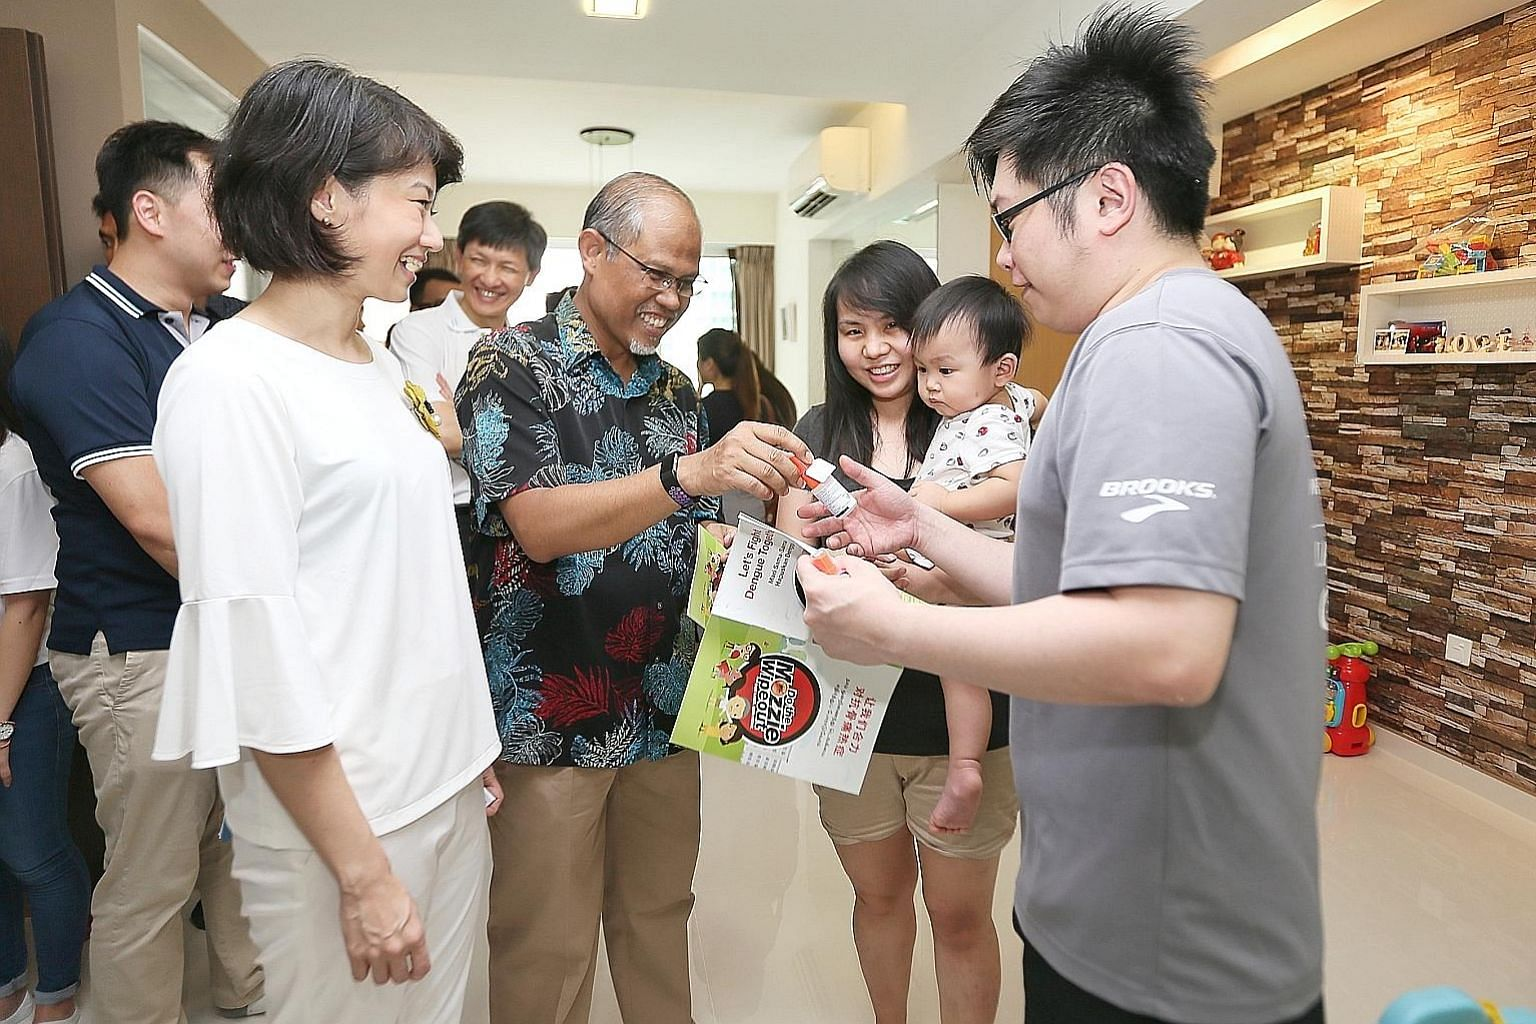 Minister for the Environment and Water Resources Masagos Zulkifli handing out mosquito repellent and pamphlets on the prevention of mosquito breeding yesterday to residents Lim Jun Wei, 33, and Erica Lim, 34, seen here with their one-year-old son Cad